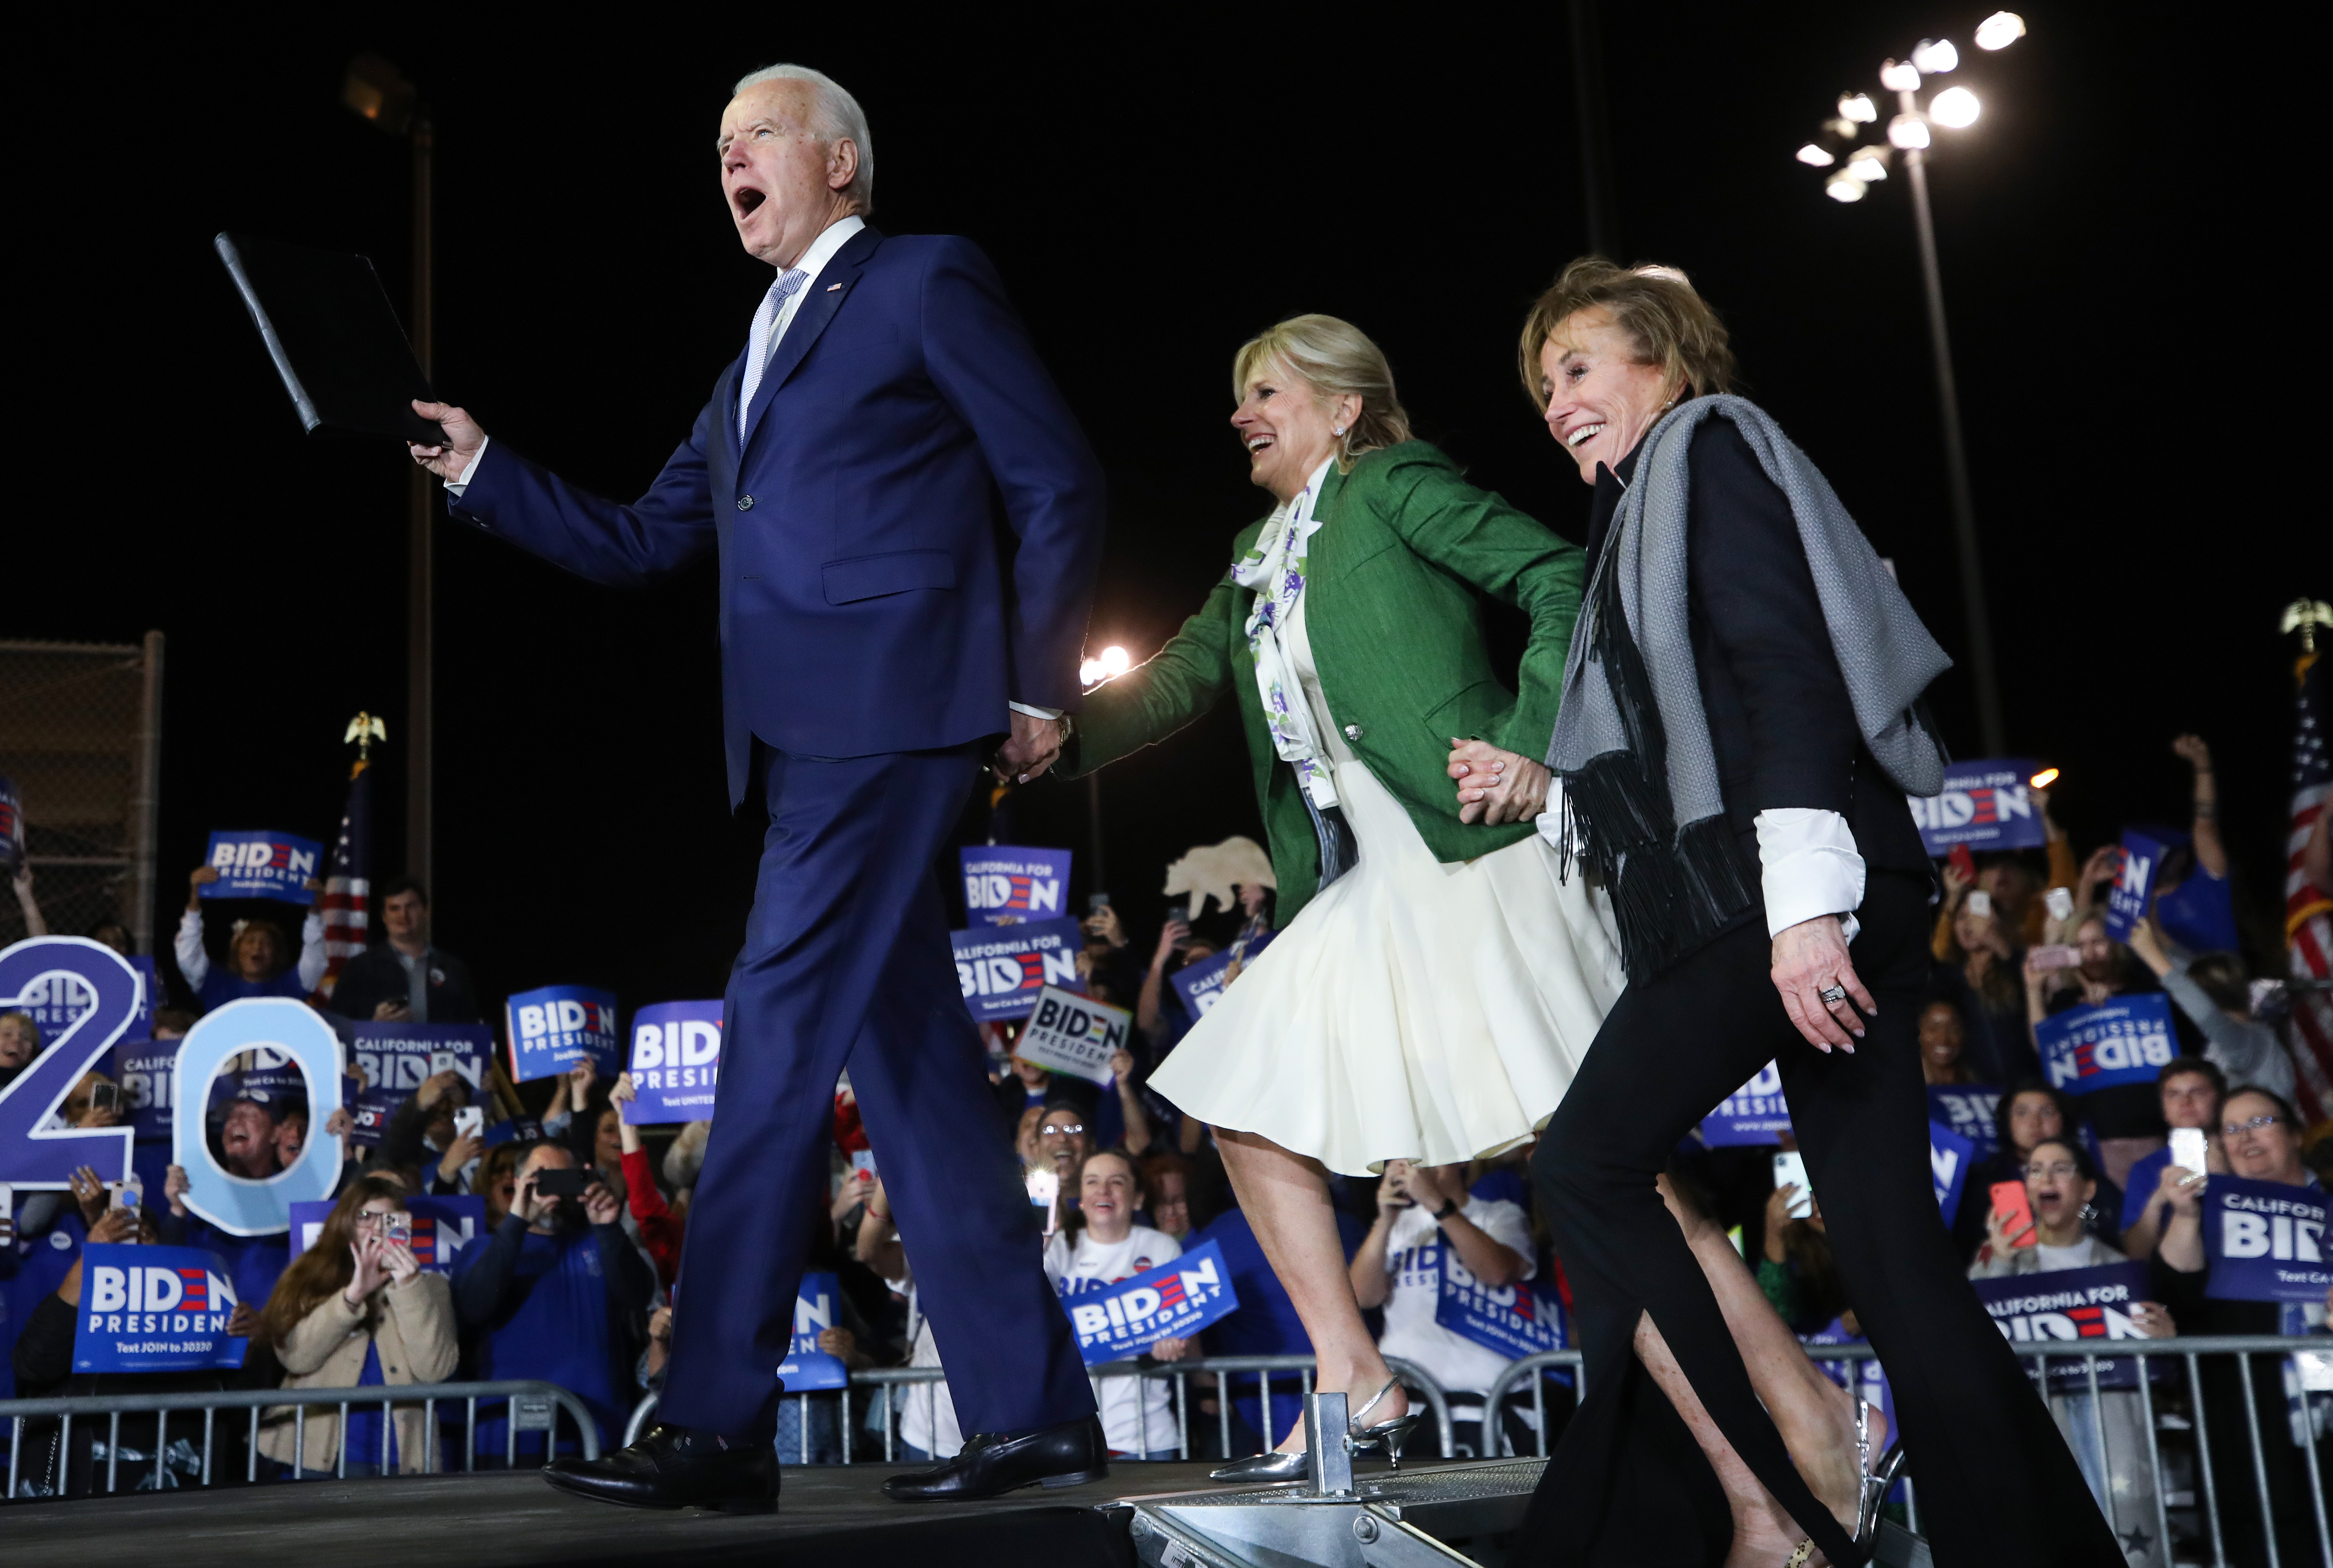 LOS ANGELES, CALIFORNIA - MARCH 03: Democratic presidential candidate former Vice President Joe Biden arrives with wife Jill (C) and sister Valerie at a Super Tuesday campaign event at Baldwin Hills Recreation Center on March 3, 2020 in Los Angeles, California. After his make-or-break victory in South Carolina, Biden has continued to do well in the Super Tuesday primaries. (Photo by Mario Tama/Getty Images)